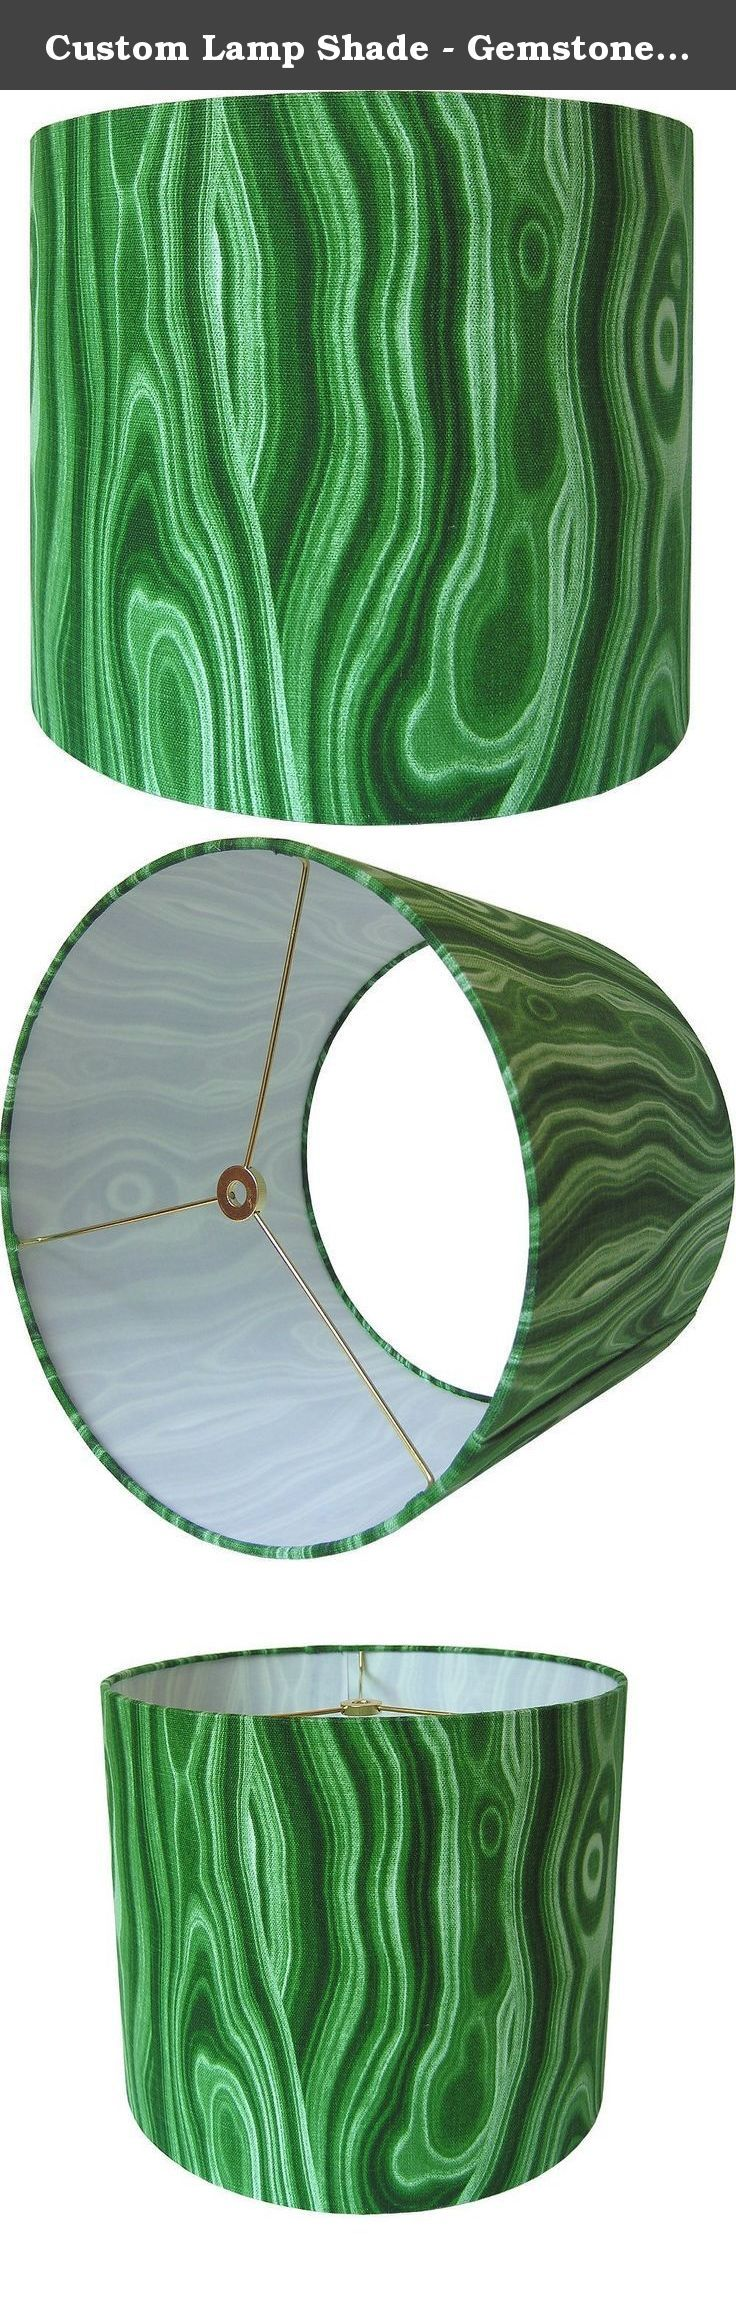 "Custom Lamp Shade - Gemstone Lampshade - Malachite Lamp Shade - Malakos by Robert Allen for Dwell Studio - Green Lamp Shade - Made to Order 9"" to 16"" Diameters. Custom lamp shade, constructed by hand from raw materials and covered with Robert Allen's Malakos in Malachite. SPECS: - FABRIC: Robert Allen's Malakos in Malachite is a cotton fabric with an emerald green, gemstone design. - FITTING: Standard washer/spider fitting to be used with harp and finial. - SIZE: Please use the drop down..."